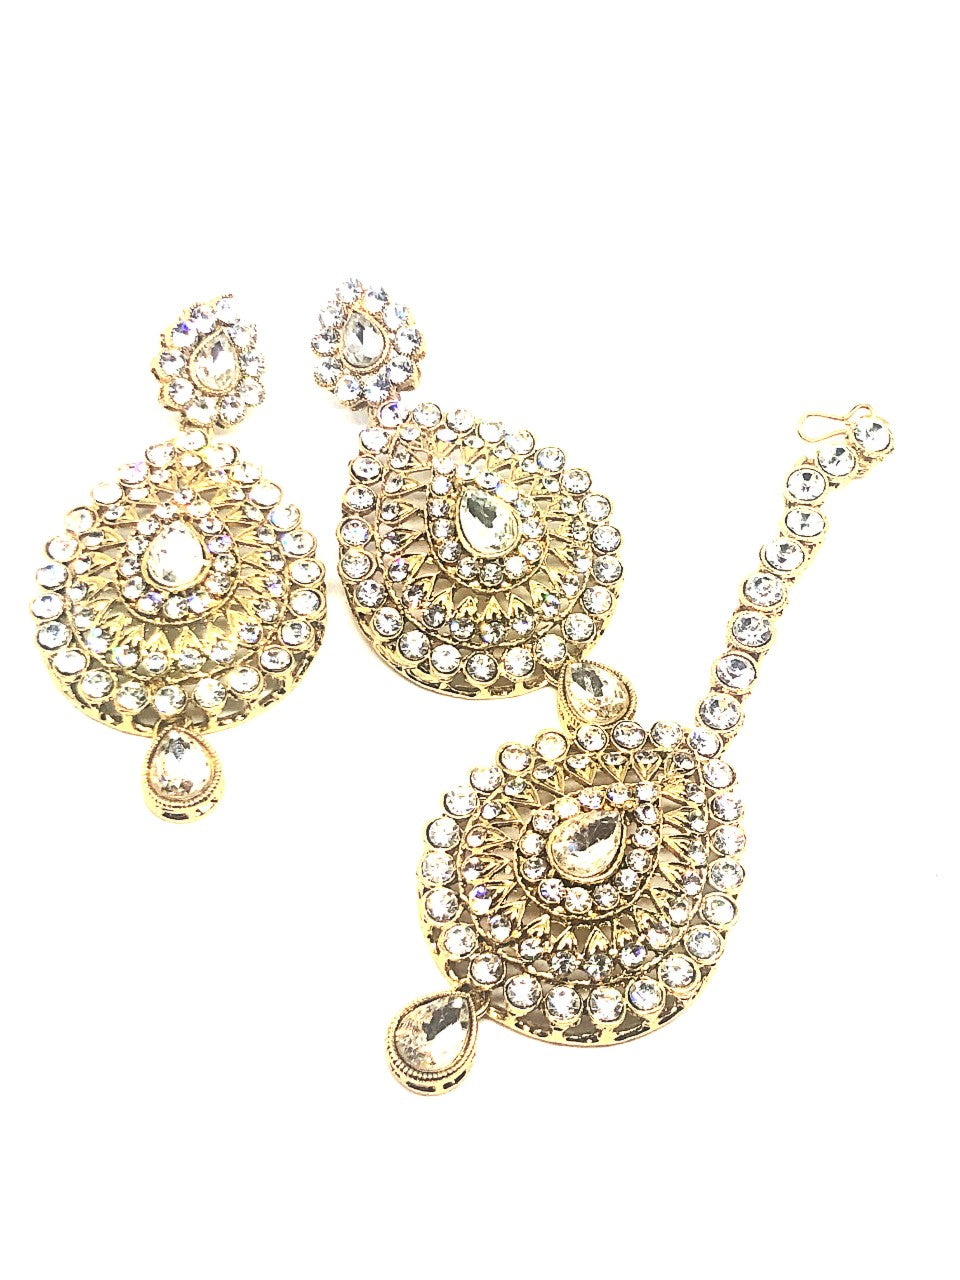 || SHAKTI || Yellow Gold Tikka with Earrings with White Stones